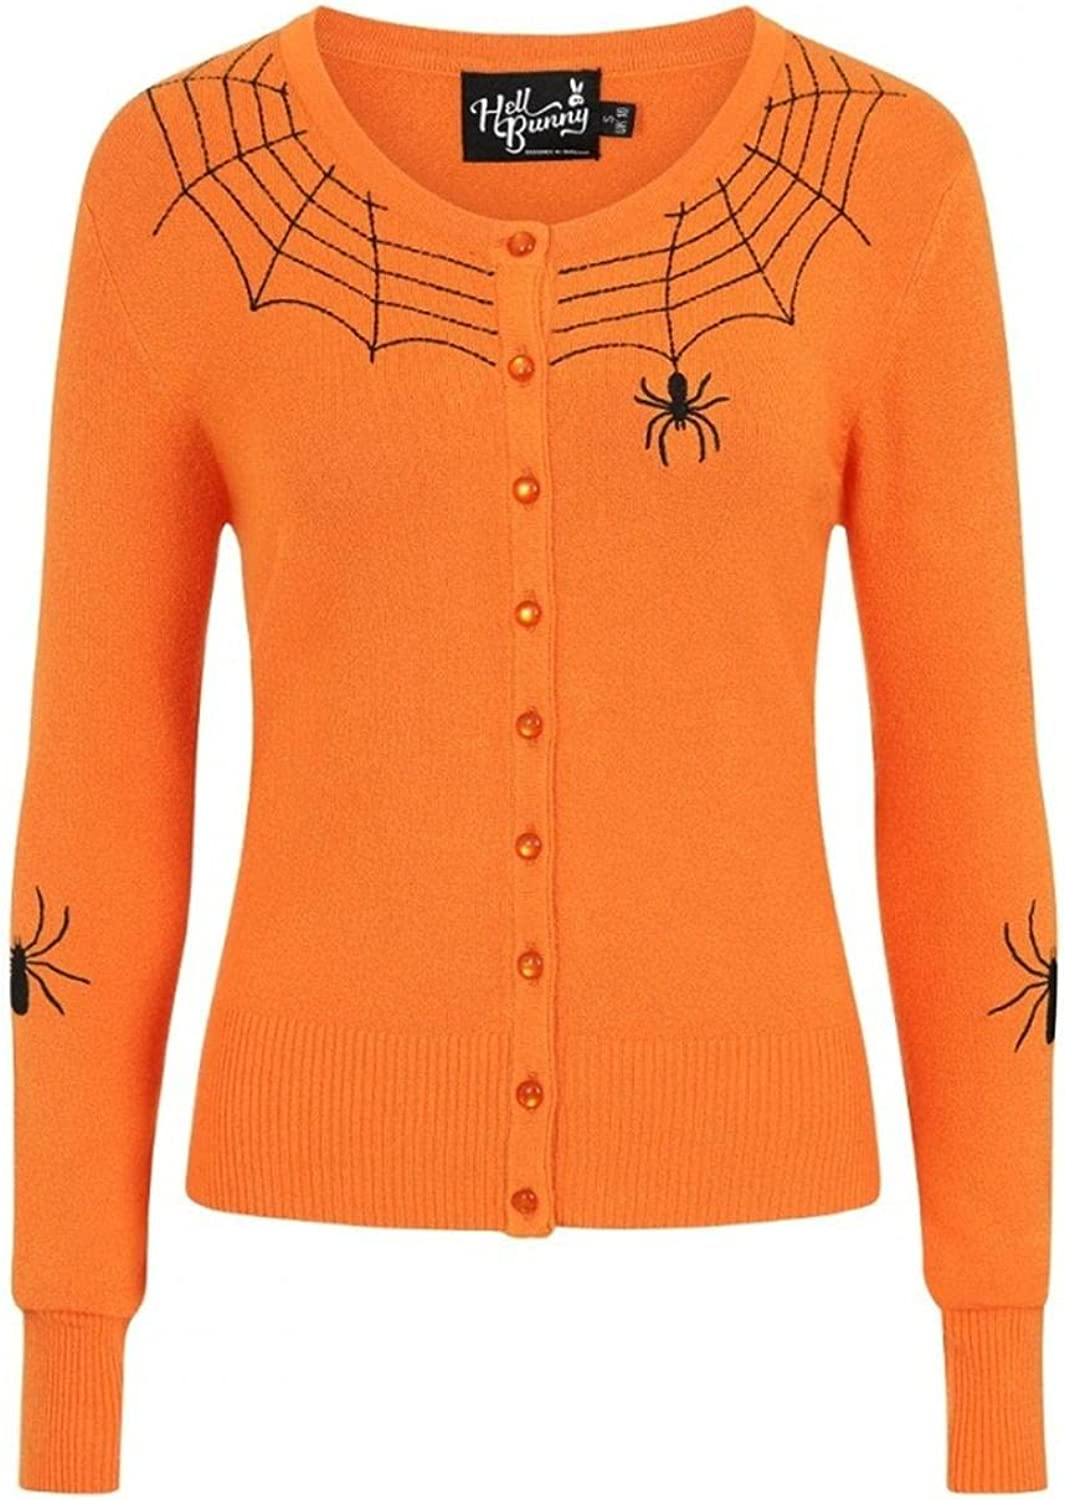 Hell Bunny Spider Vintage Style Retro Long Sleeve Sweater Cardigan